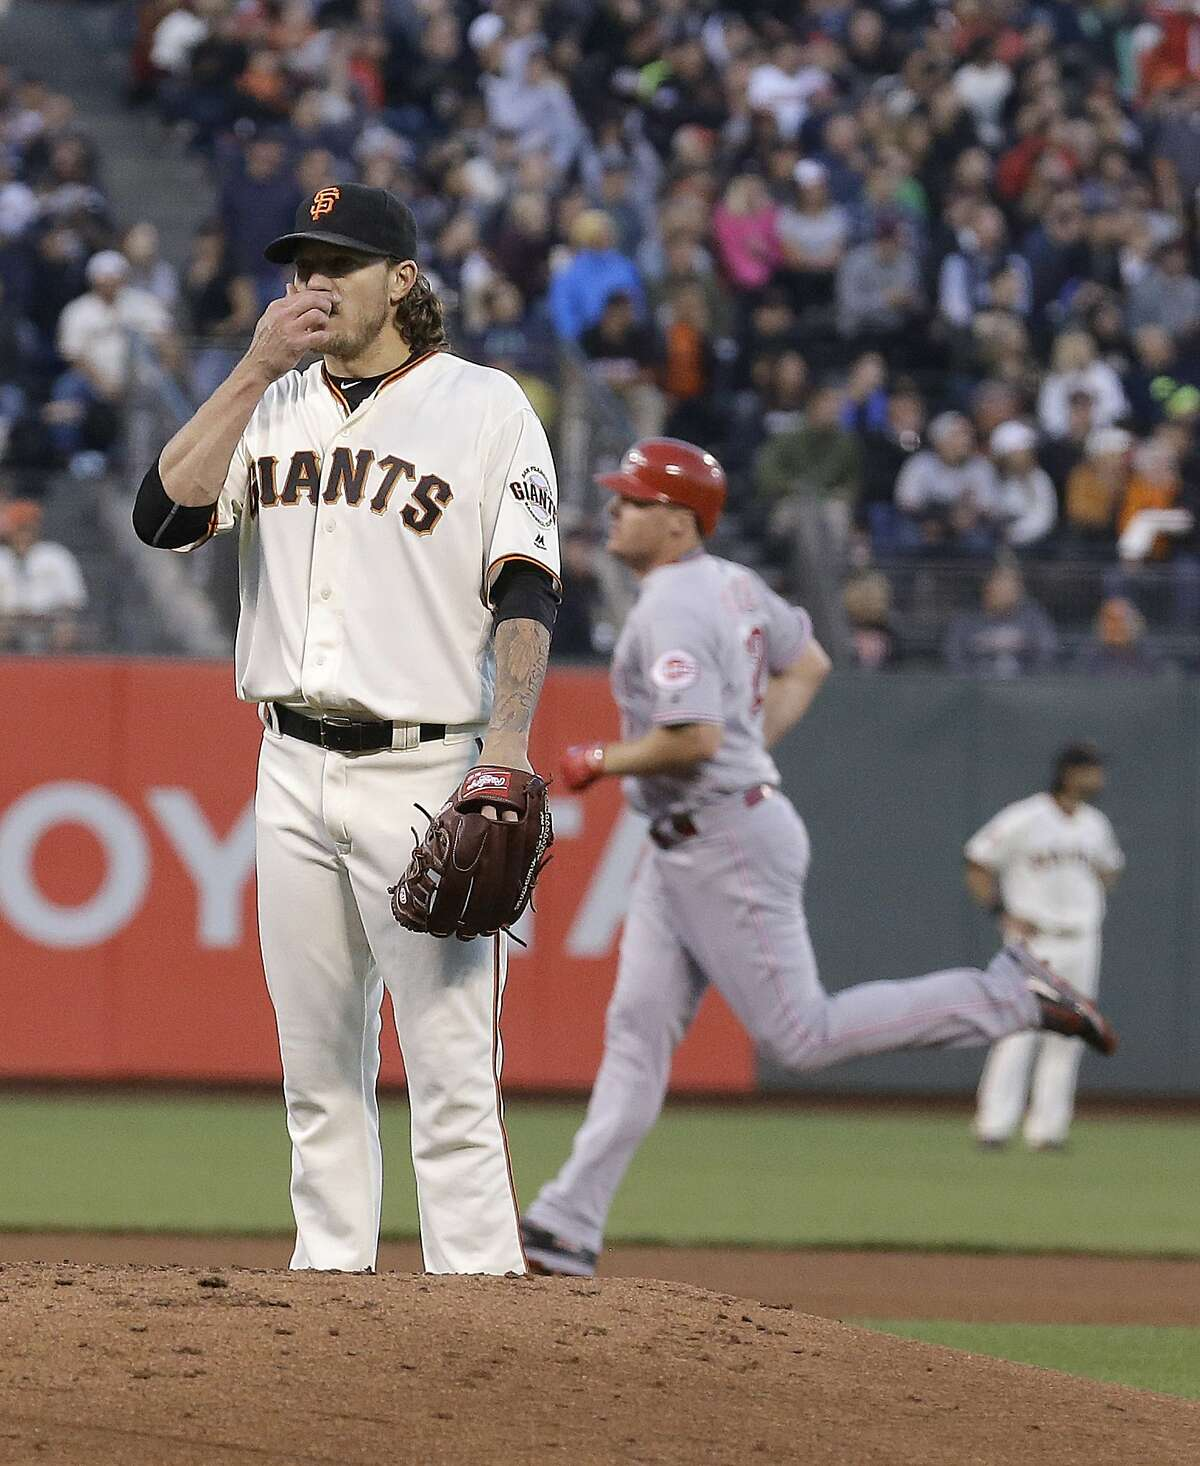 San Francisco Giants pitcher Jake Peavy, left, reacts after allowing a two-run home run to Cincinnati Reds' Jay Bruce, right, during the fourth inning of a baseball game in San Francisco, Monday, July 25, 2016. (AP Photo/Jeff Chiu)